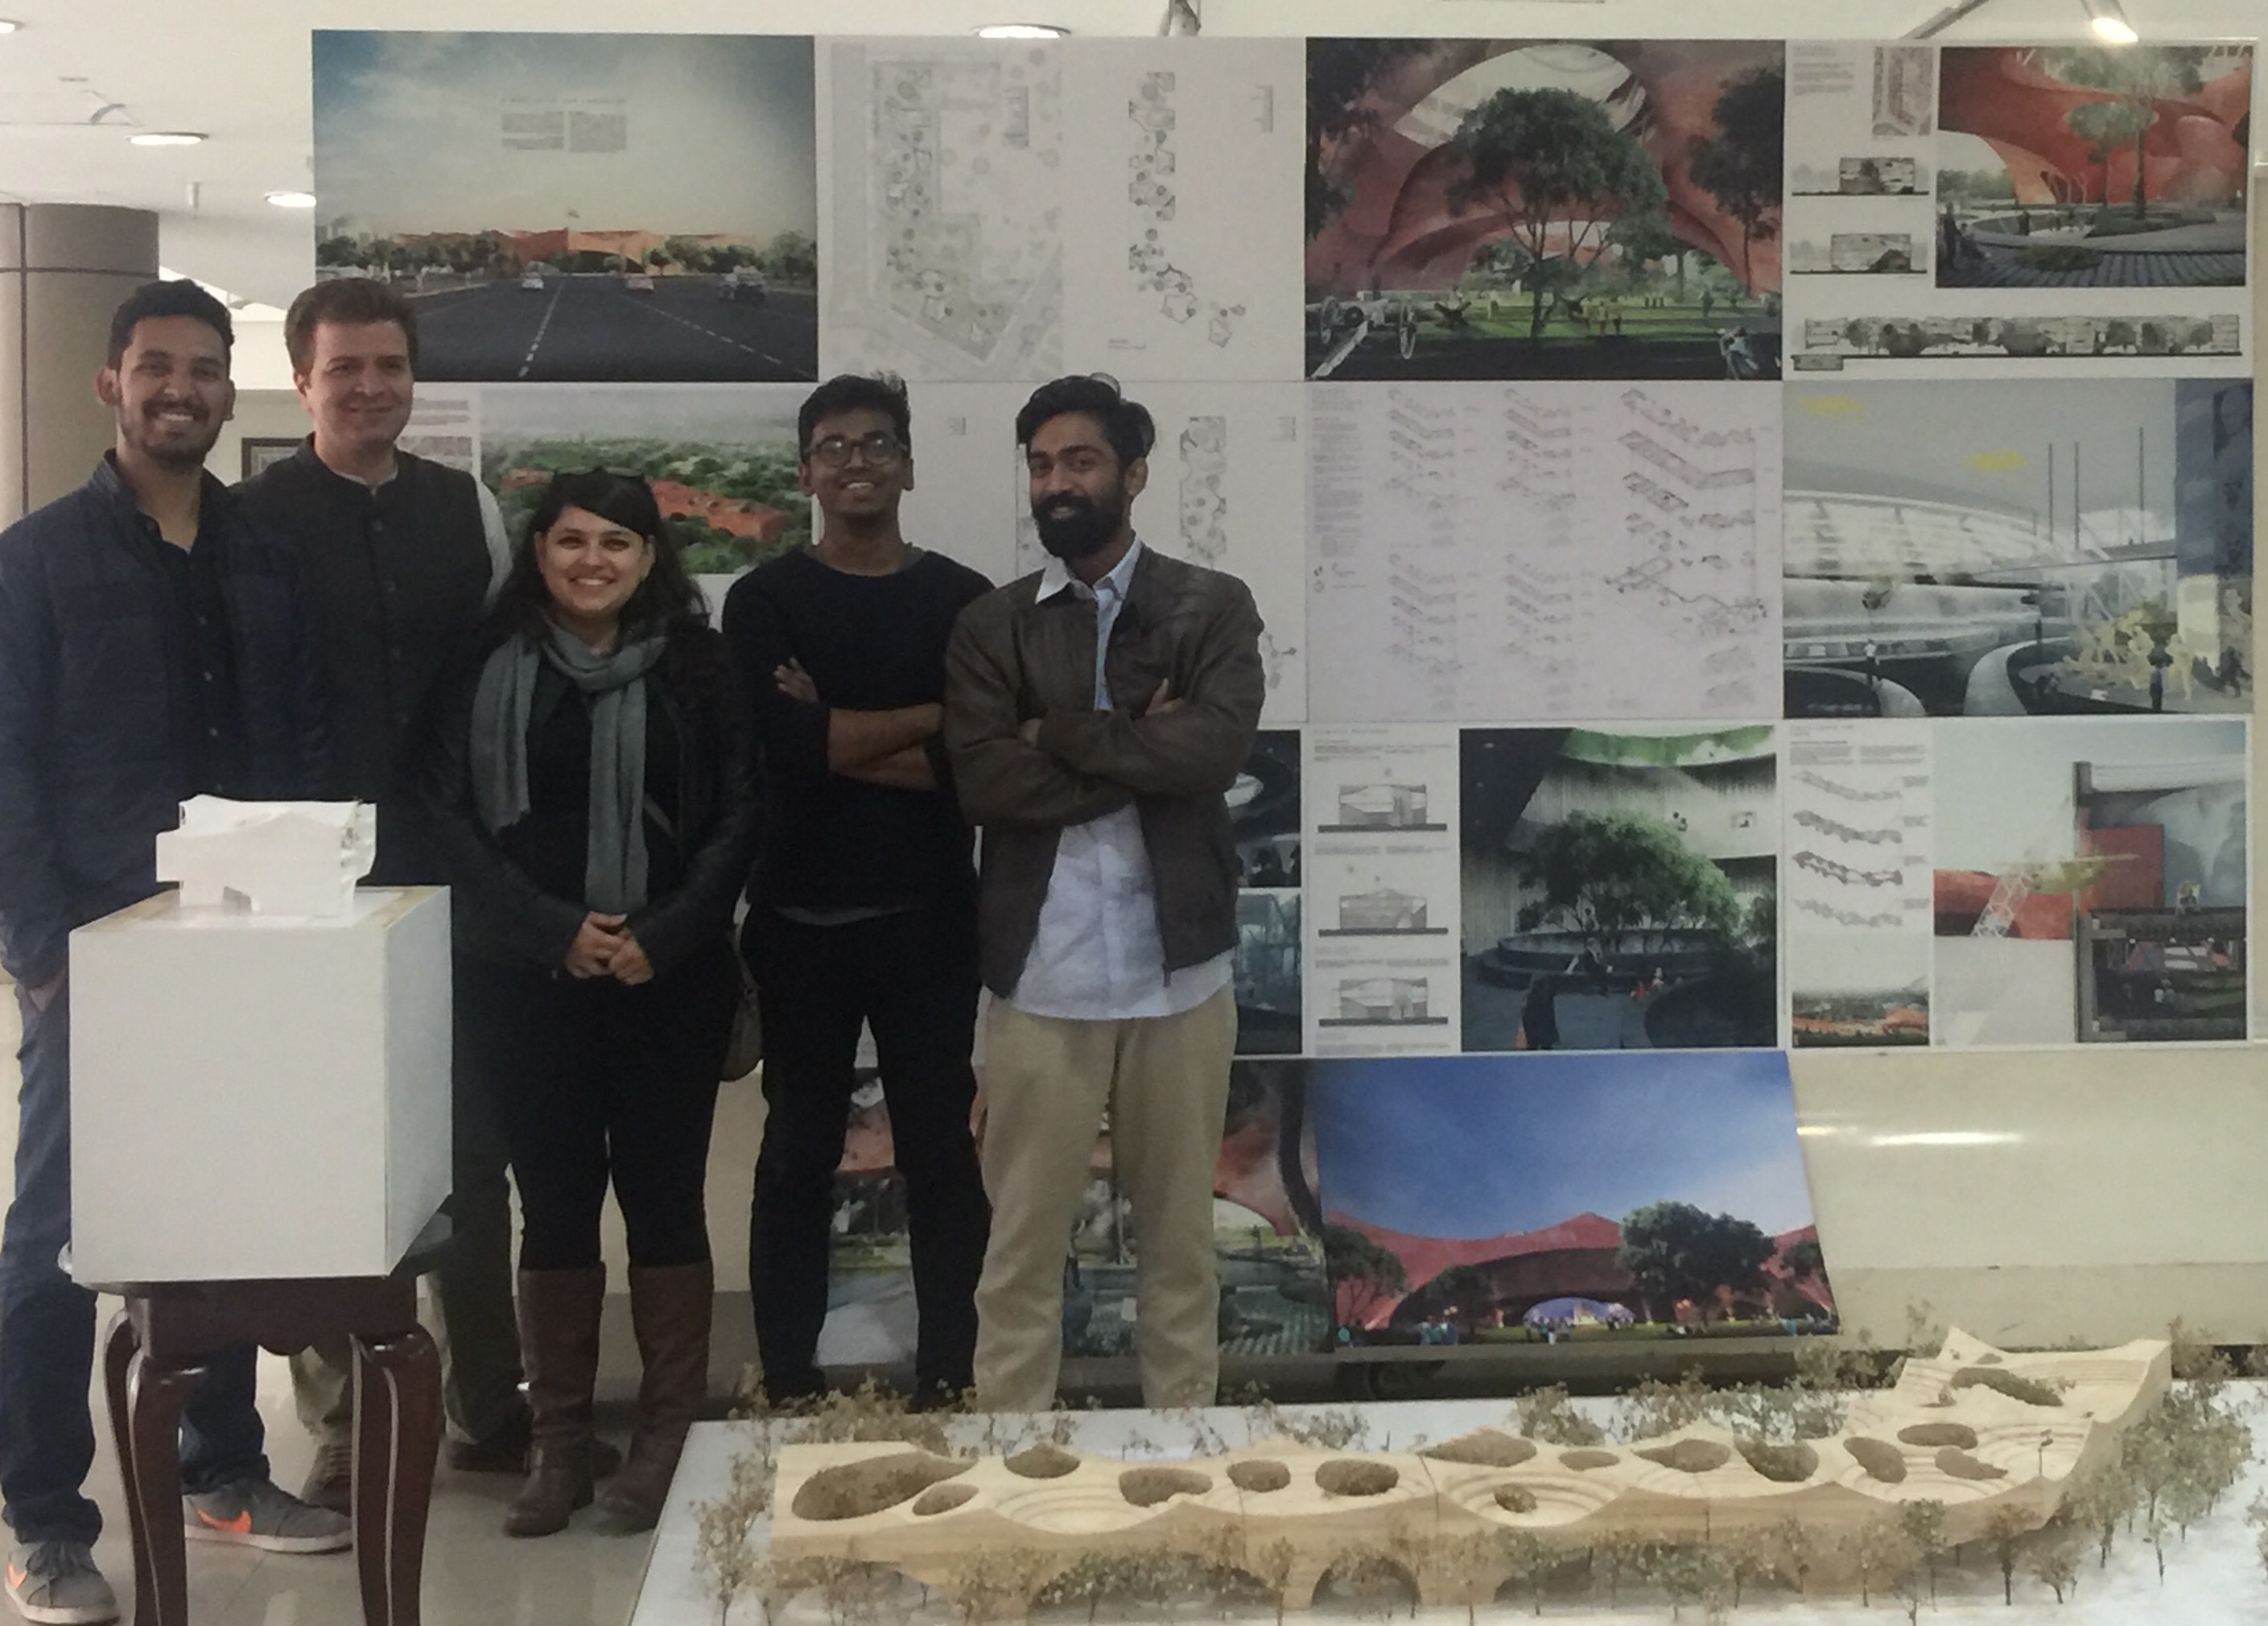 Sameep Padora and his team with the model of their design. Photo courtesy Studio sP+a